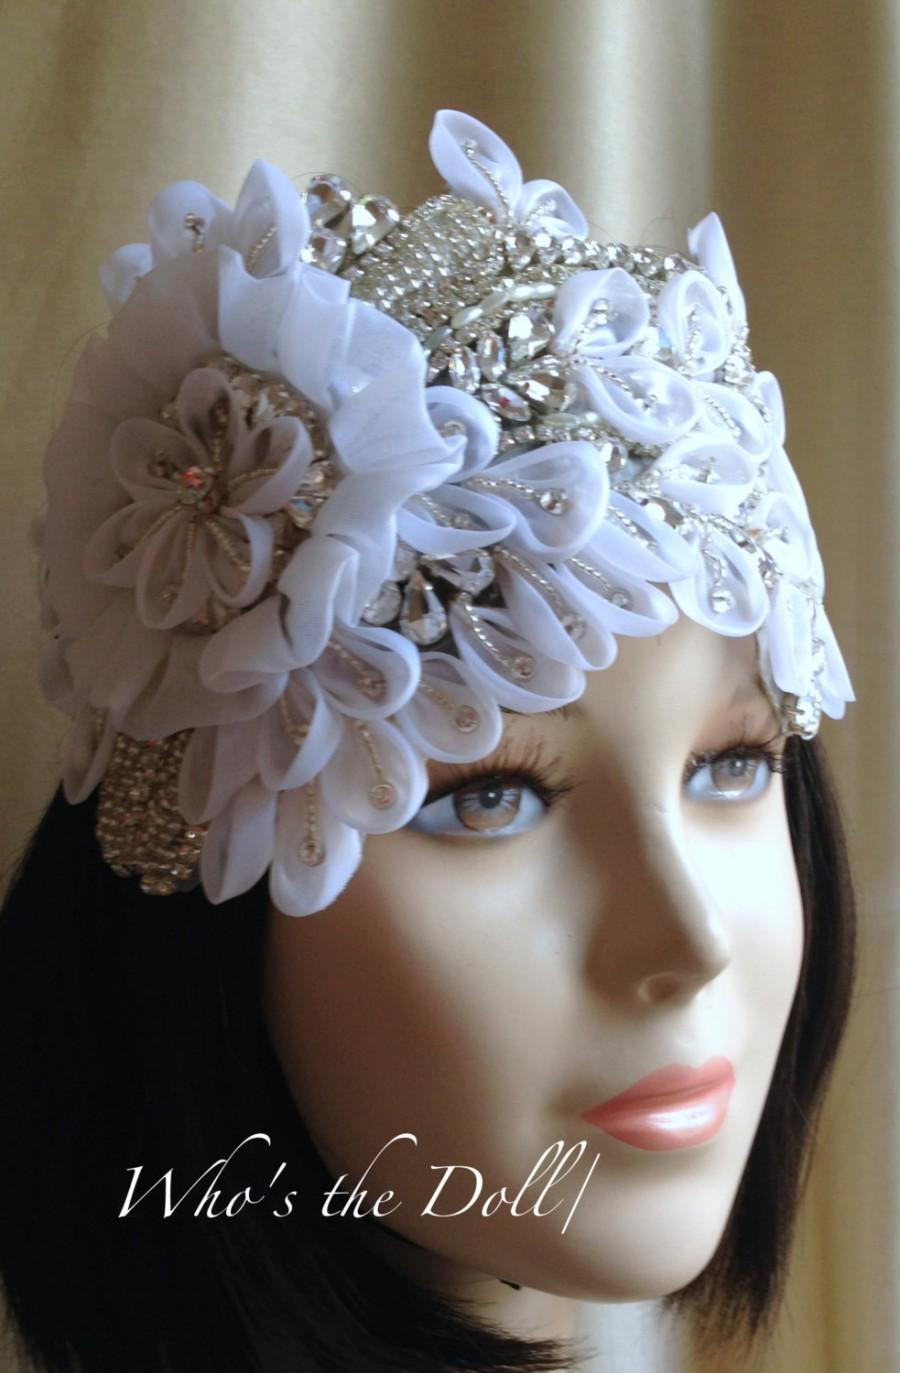 زفاف - Rhinestone Bridal headpiece/Beaded headpiece/Vintage style headpiece/Statement piece/Downton Abbey style headpiece/High Quality headpiece